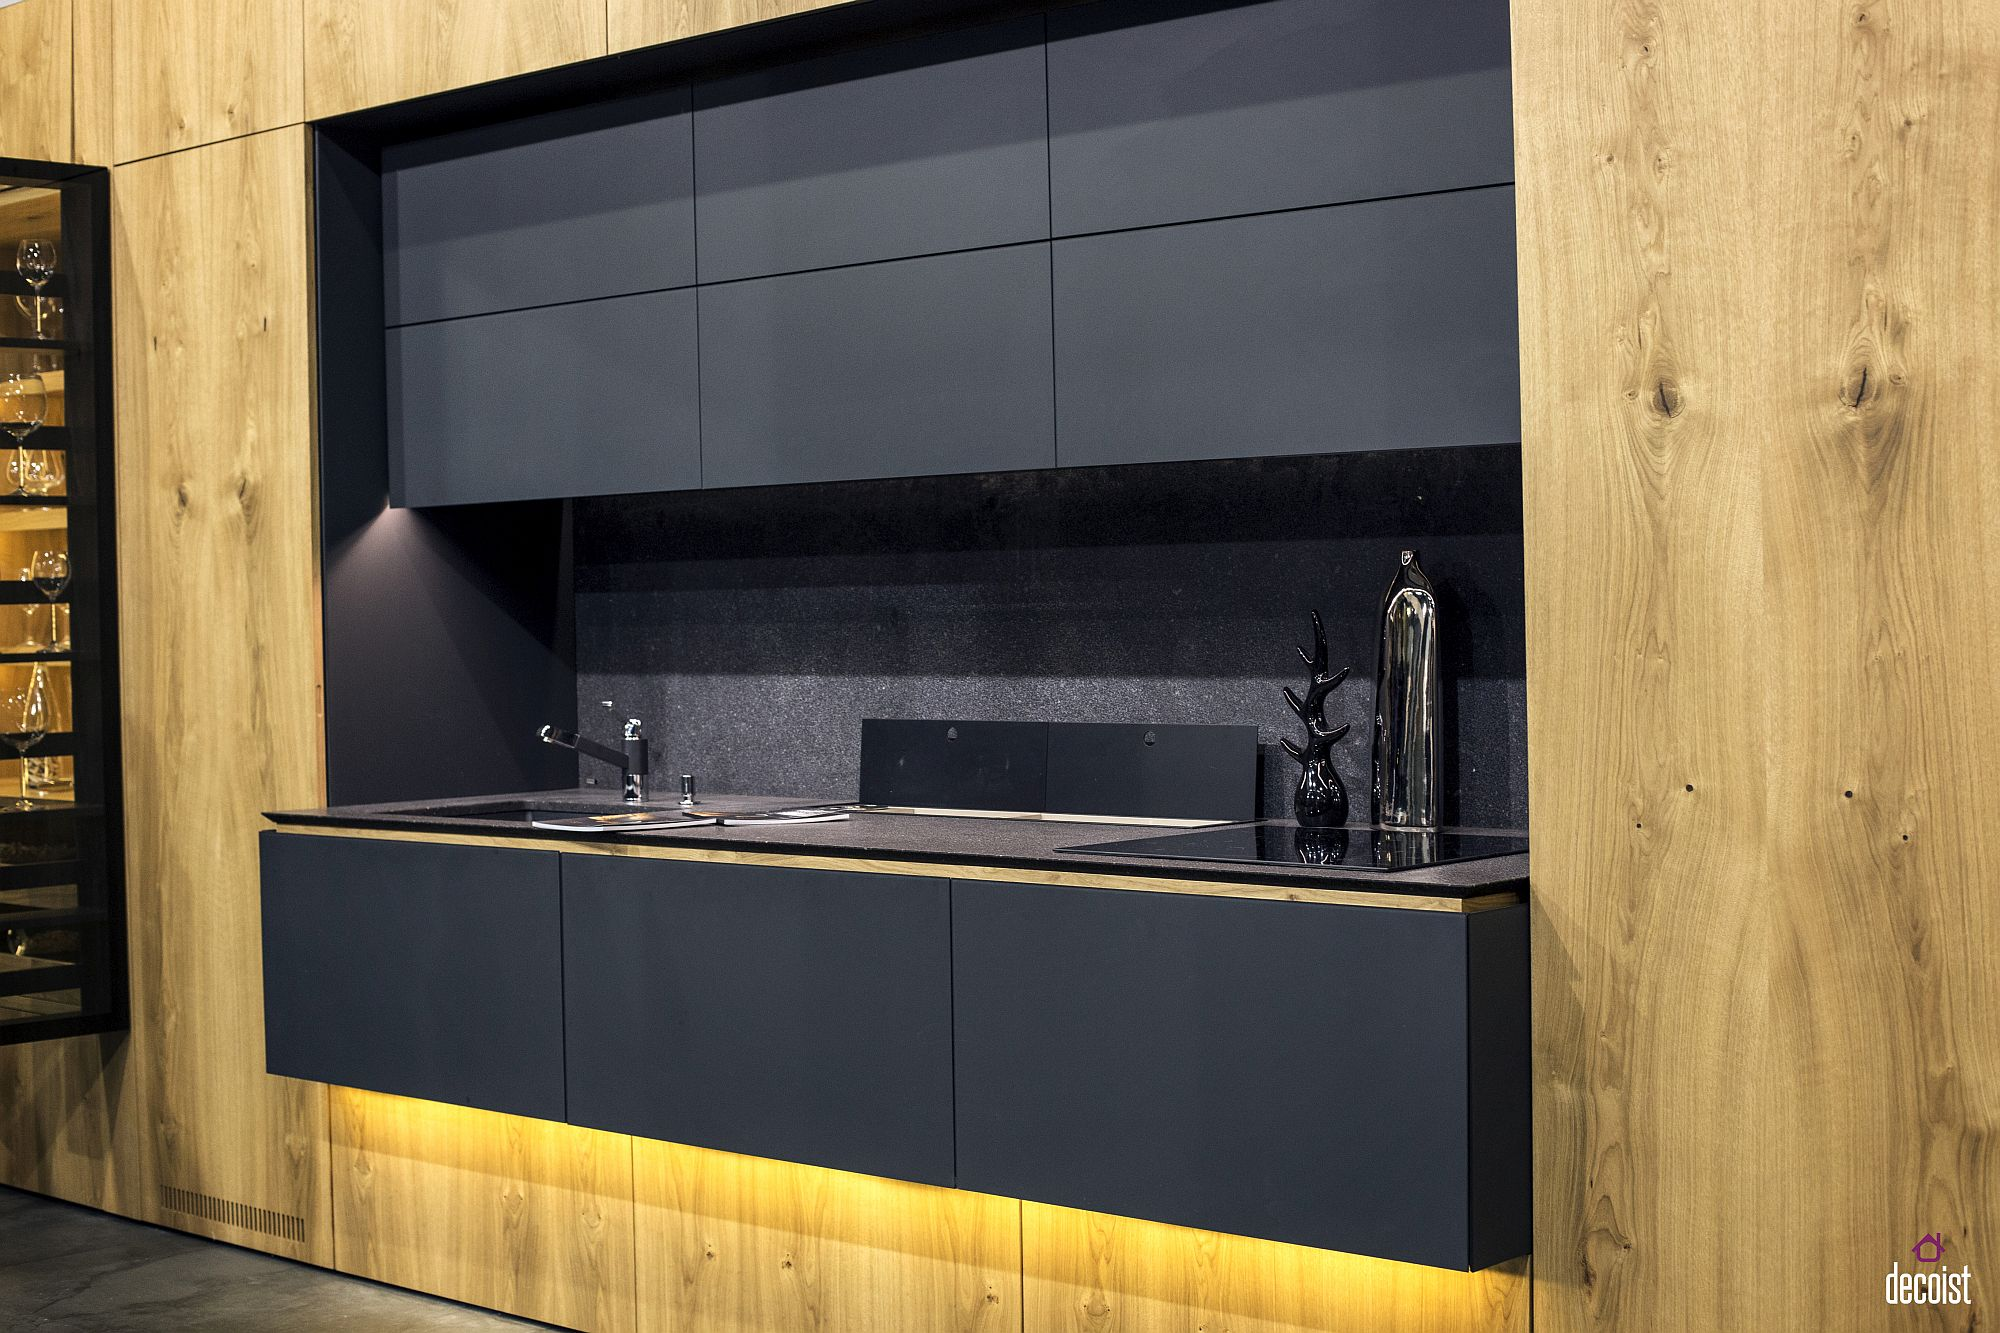 Under-counter LED lighting adds glam to the minimal single kitchen